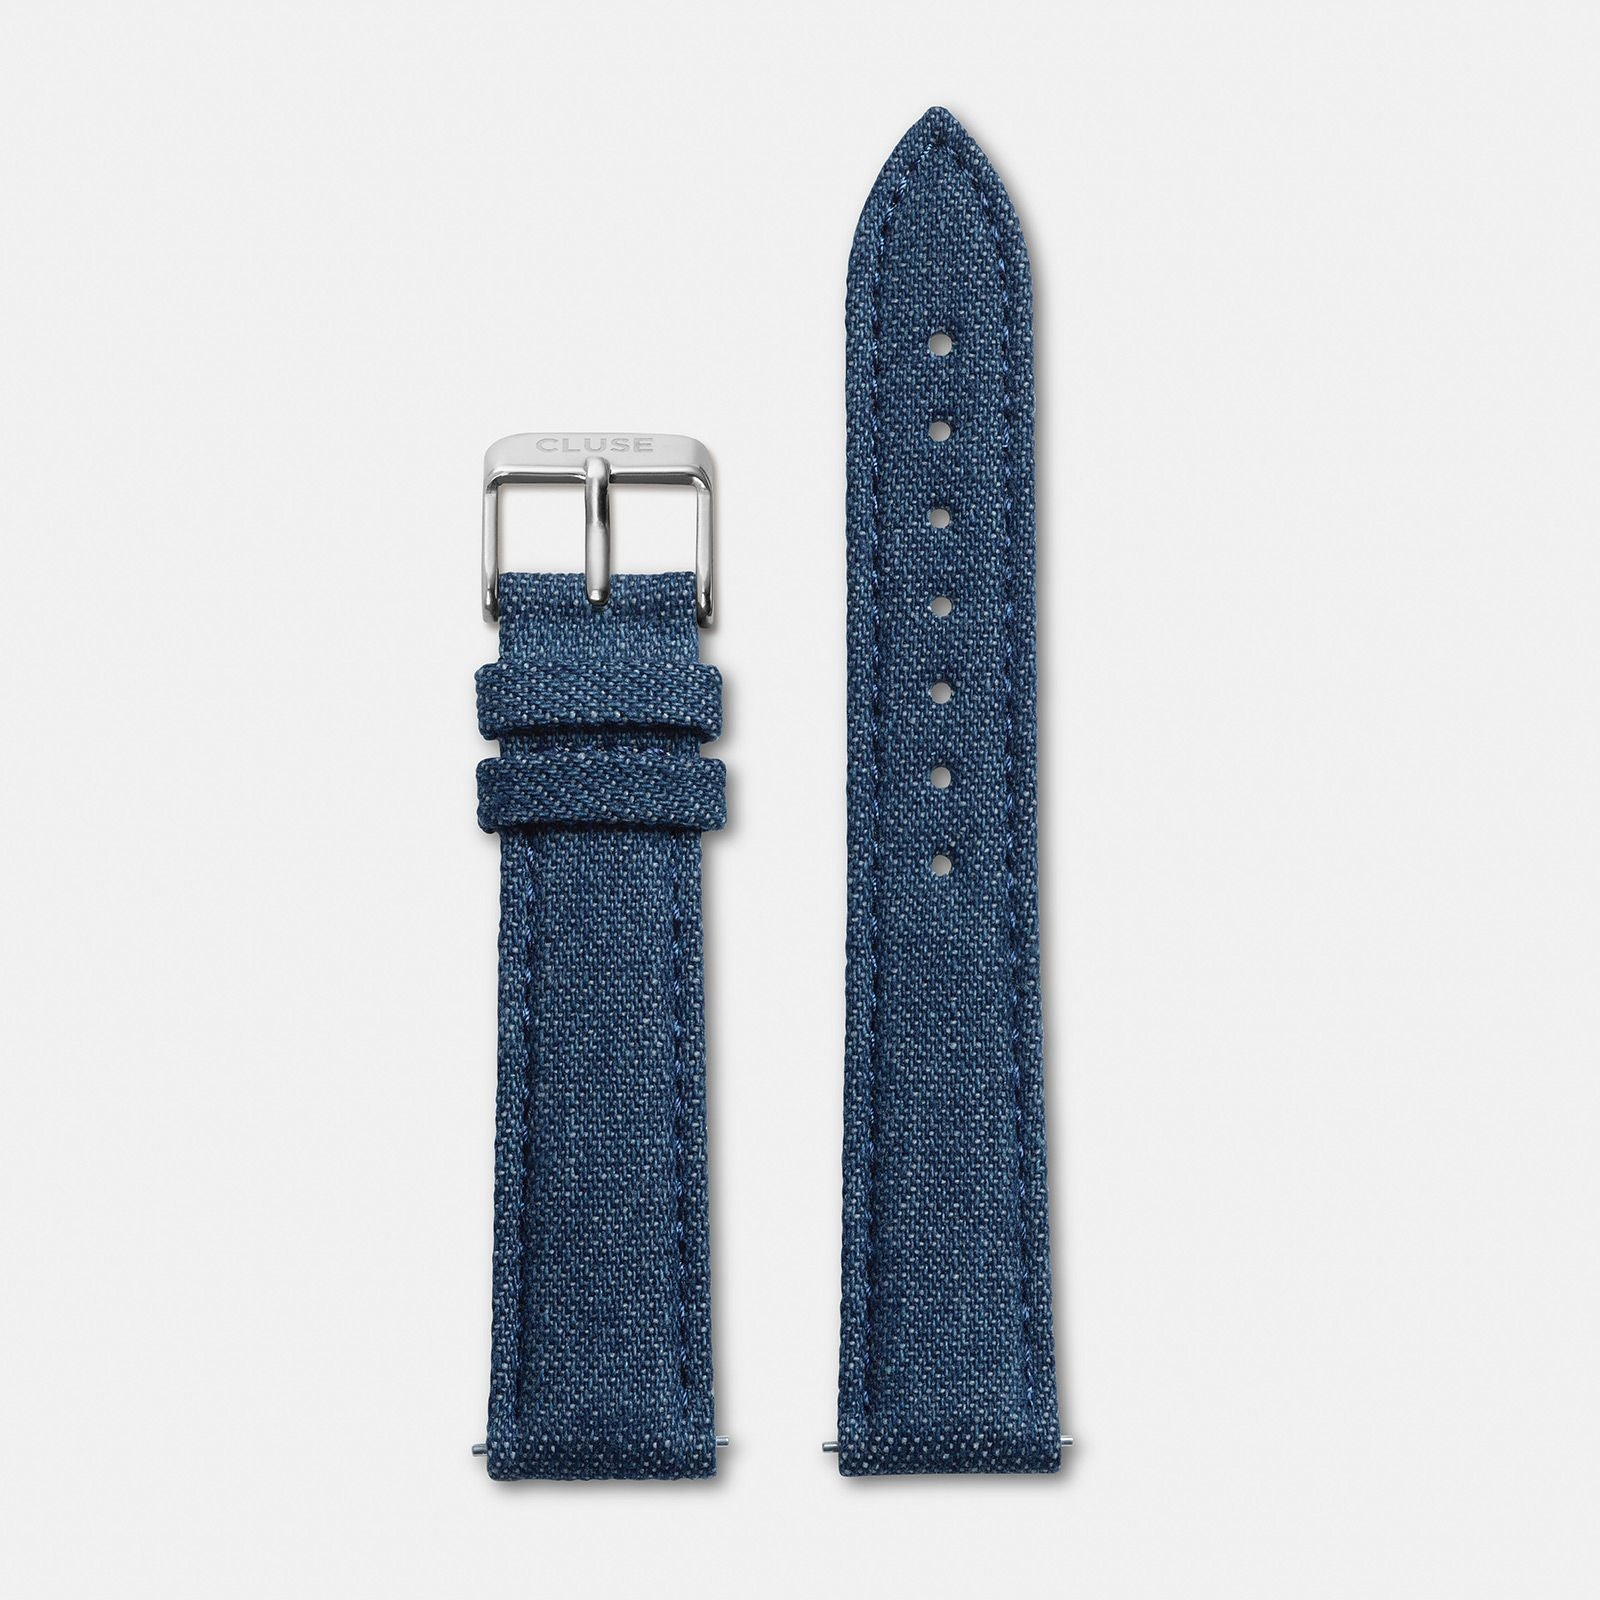 CLUSE 18 mm Strap Blue Denim/Silver CLS031 - Cinturino